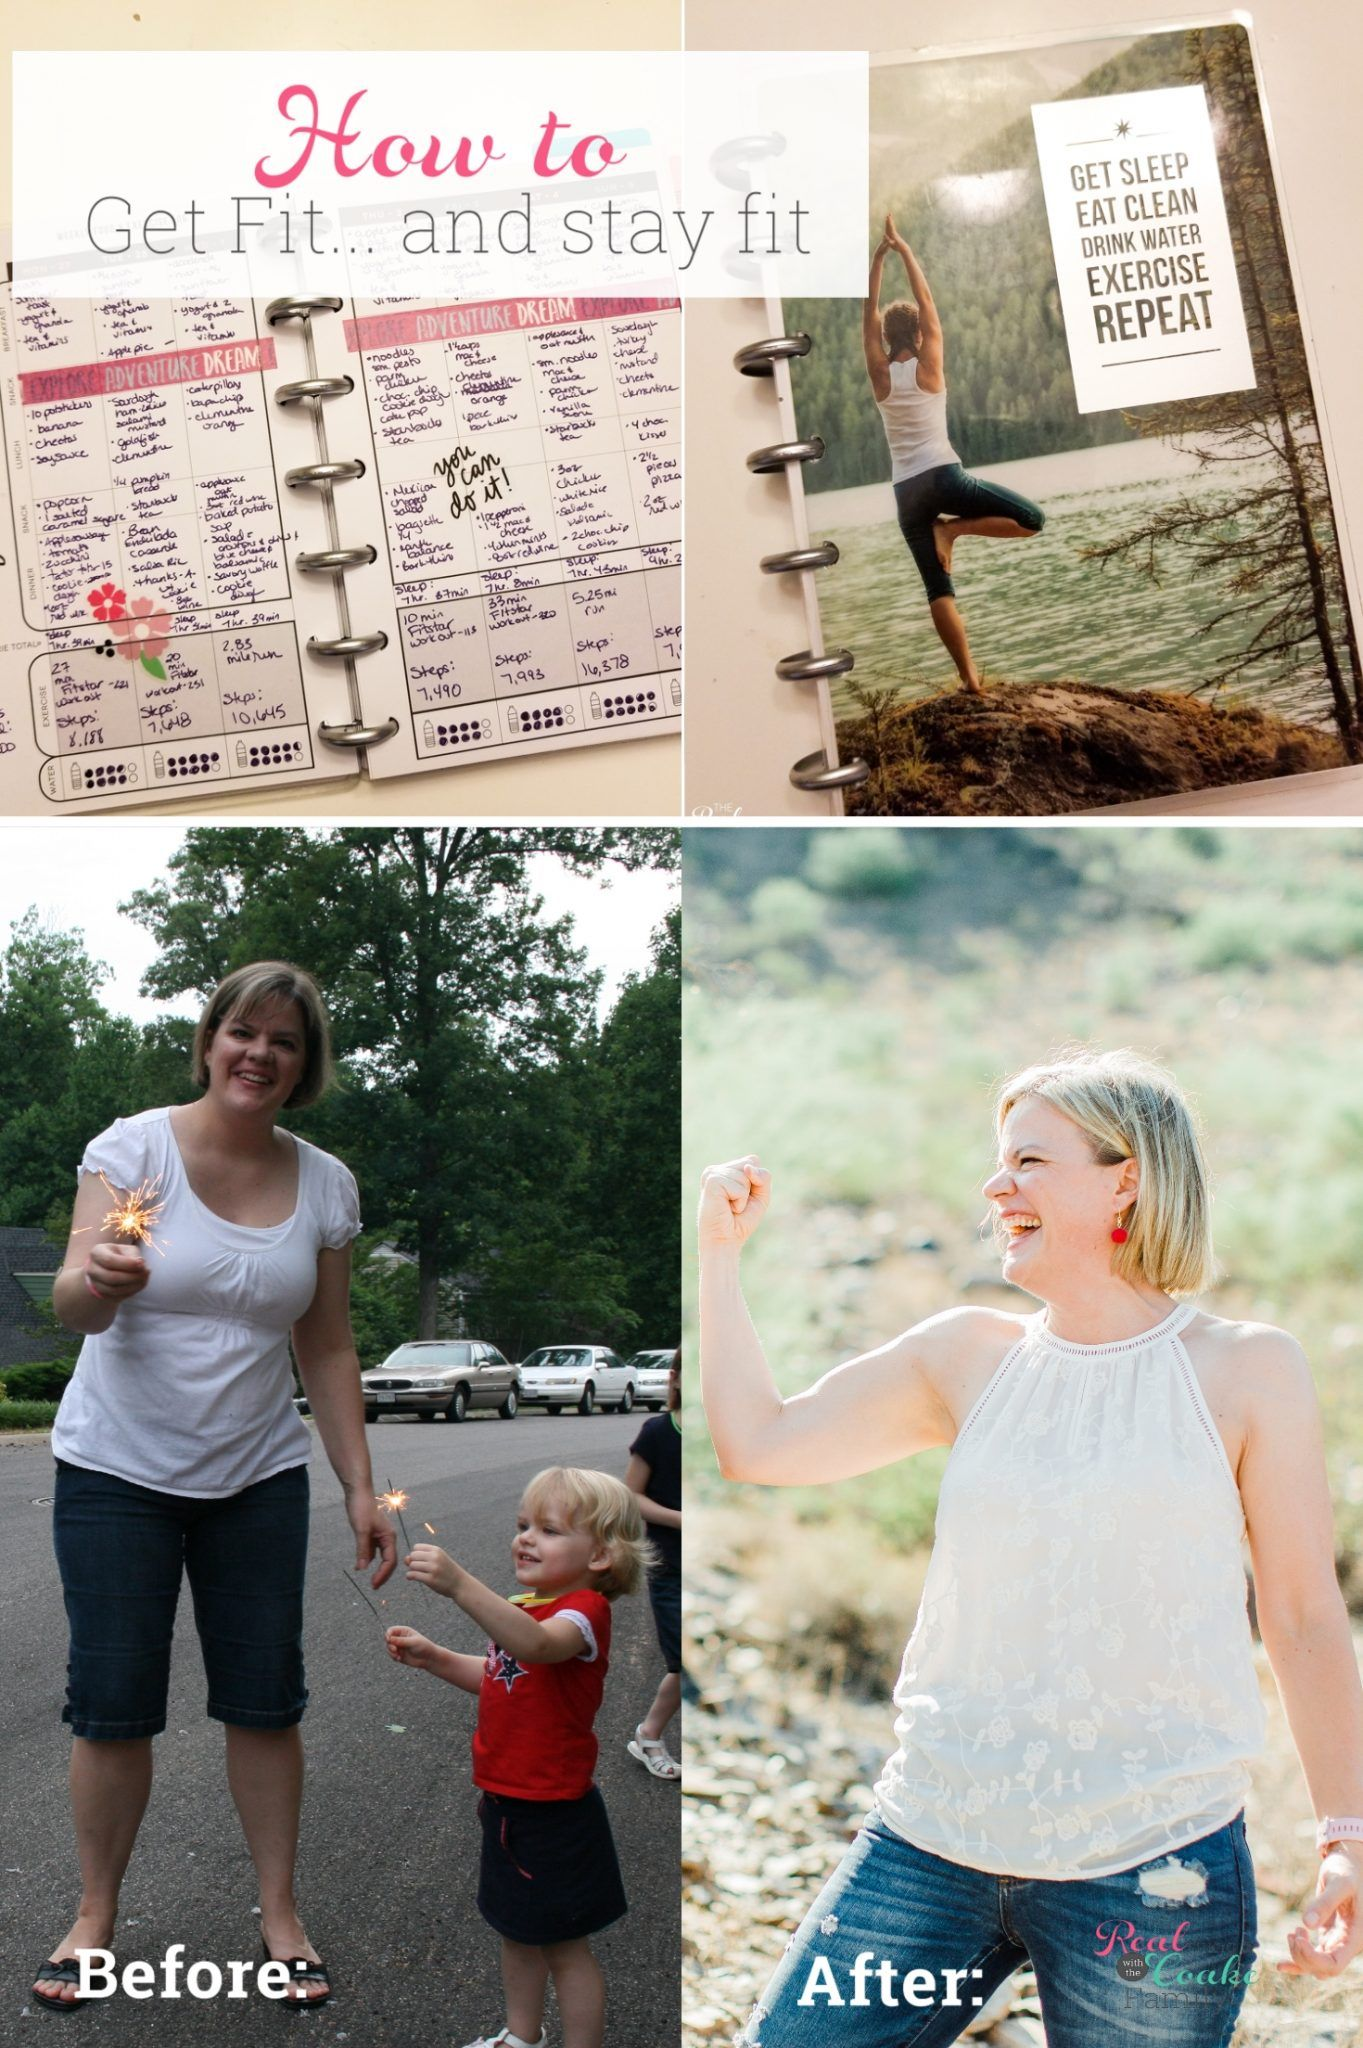 Such Inspiration for hardworking moms on how to get fit and stay fit. Good motivation, goals, tips a...